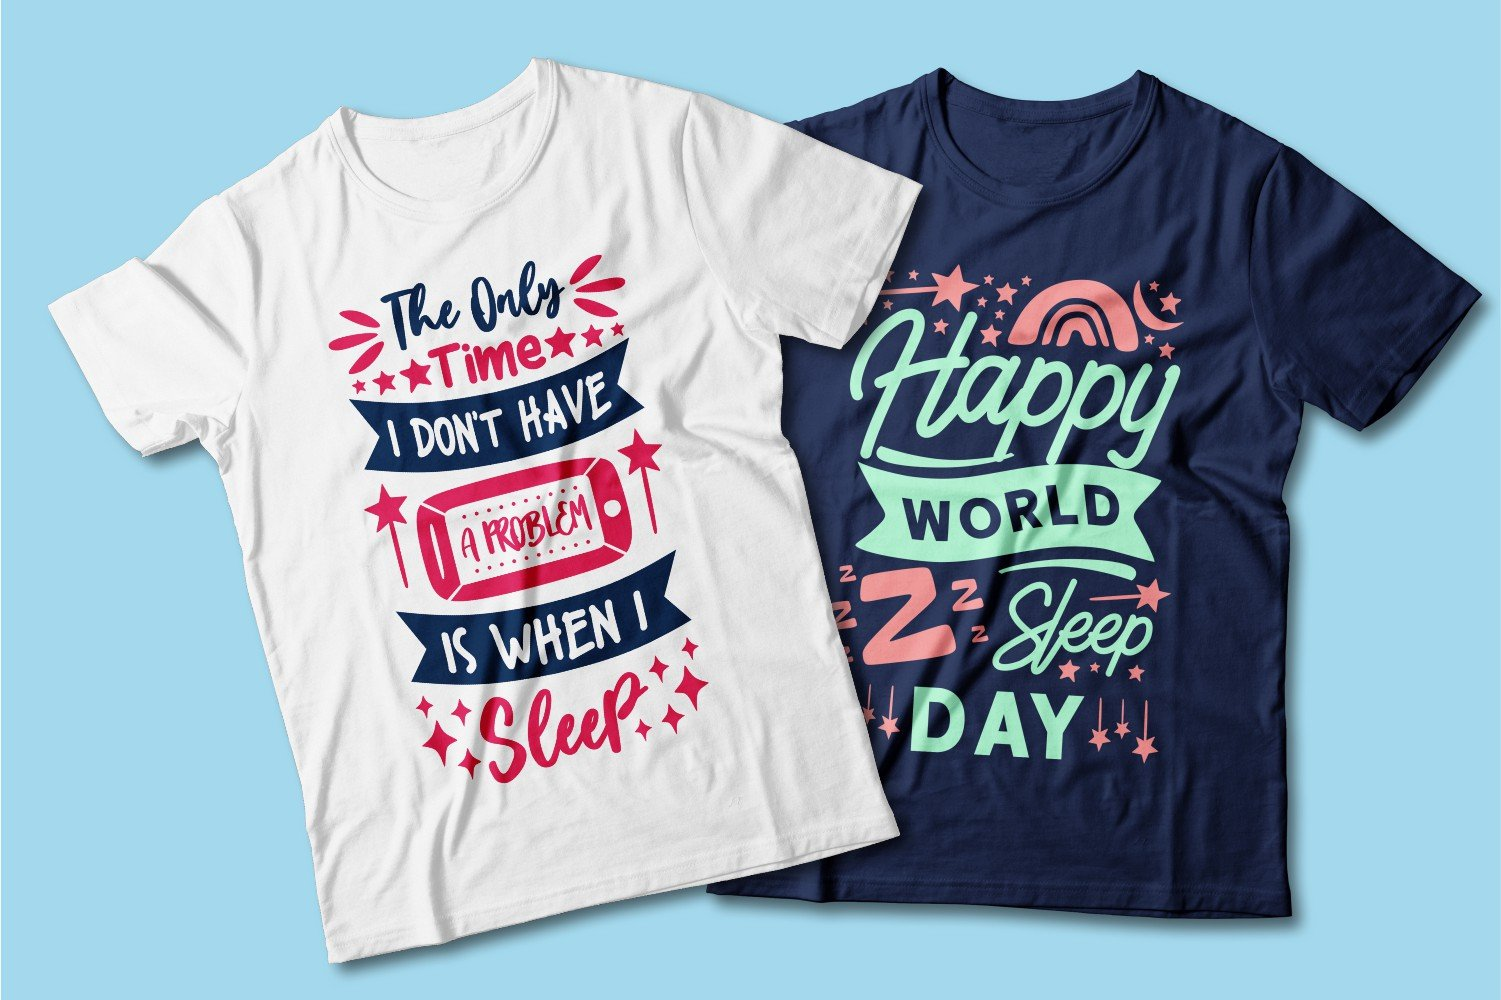 White and blue T-shirts with multi-colored lettering.